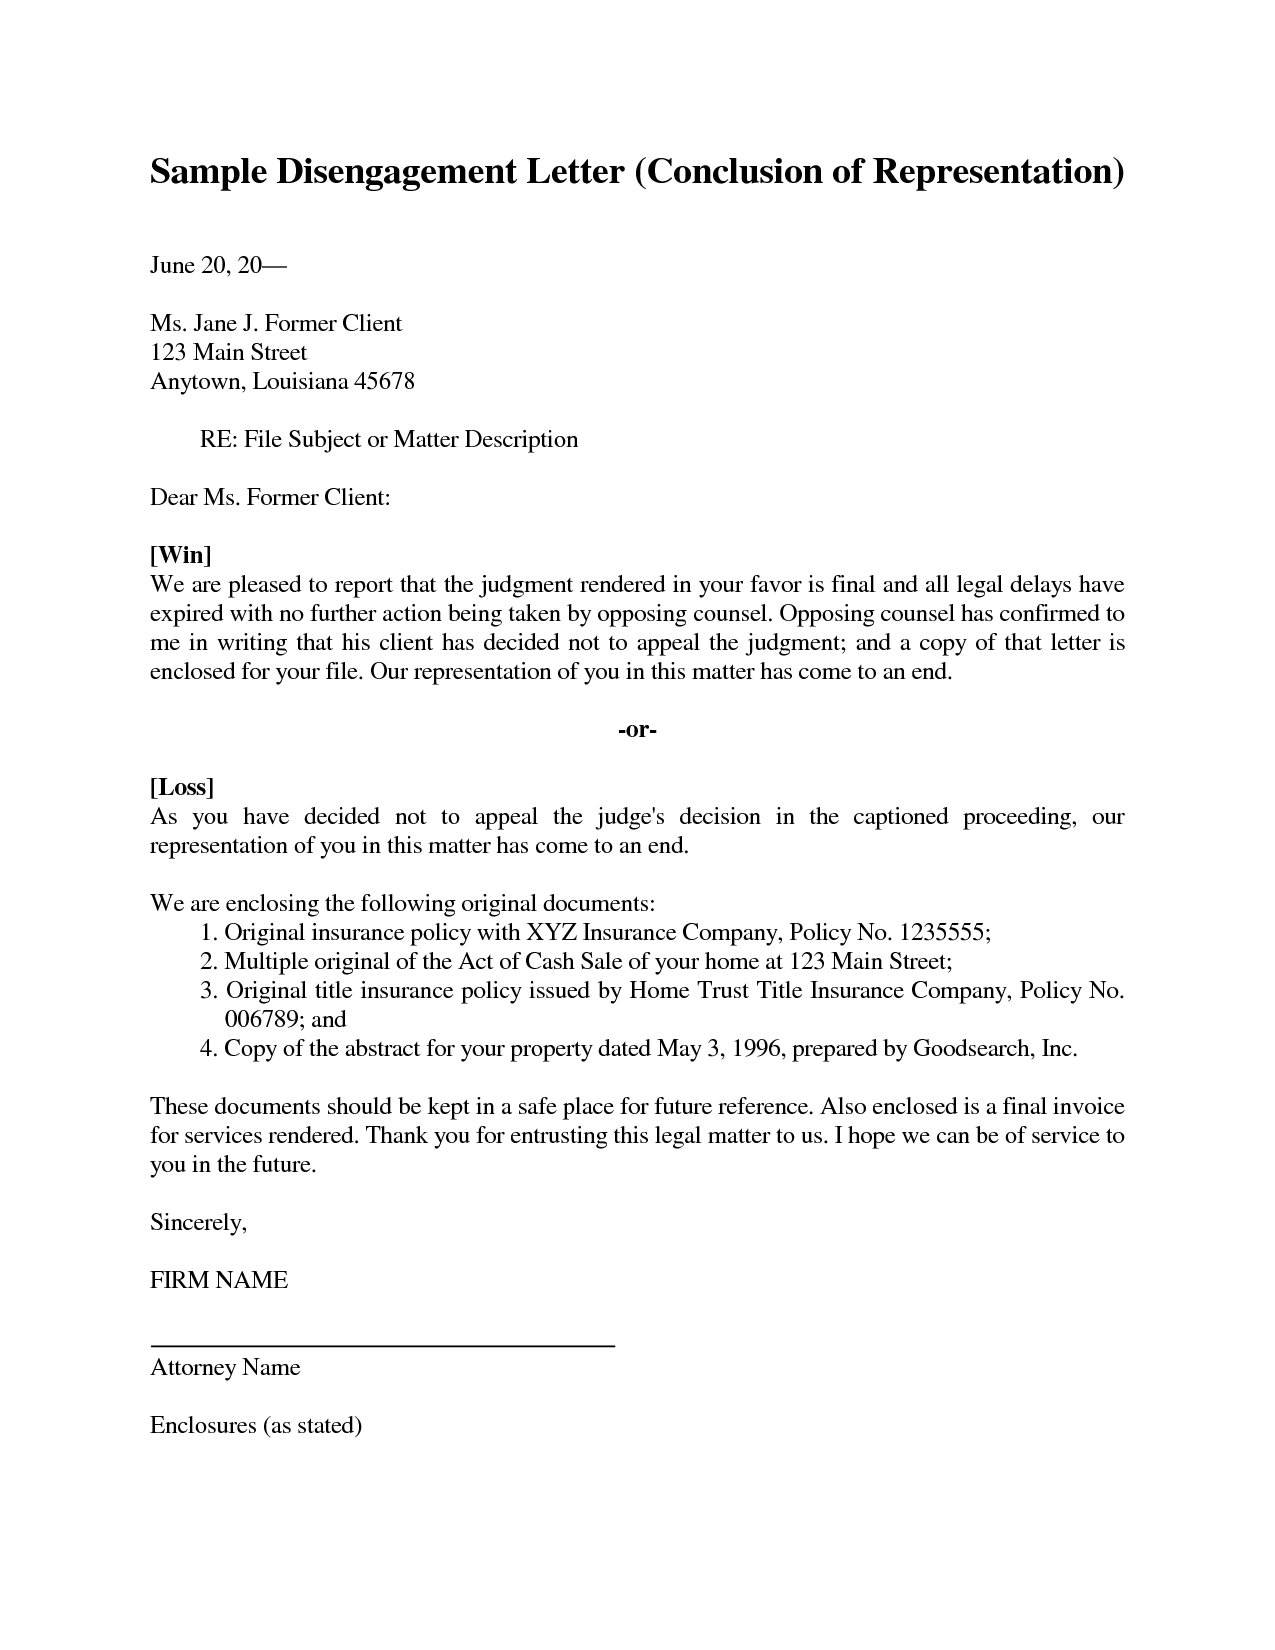 Sample legal representation letter by mlp18219 sample legal sample legal representation letter by mlp18219 sample legal letters spiritdancerdesigns Choice Image